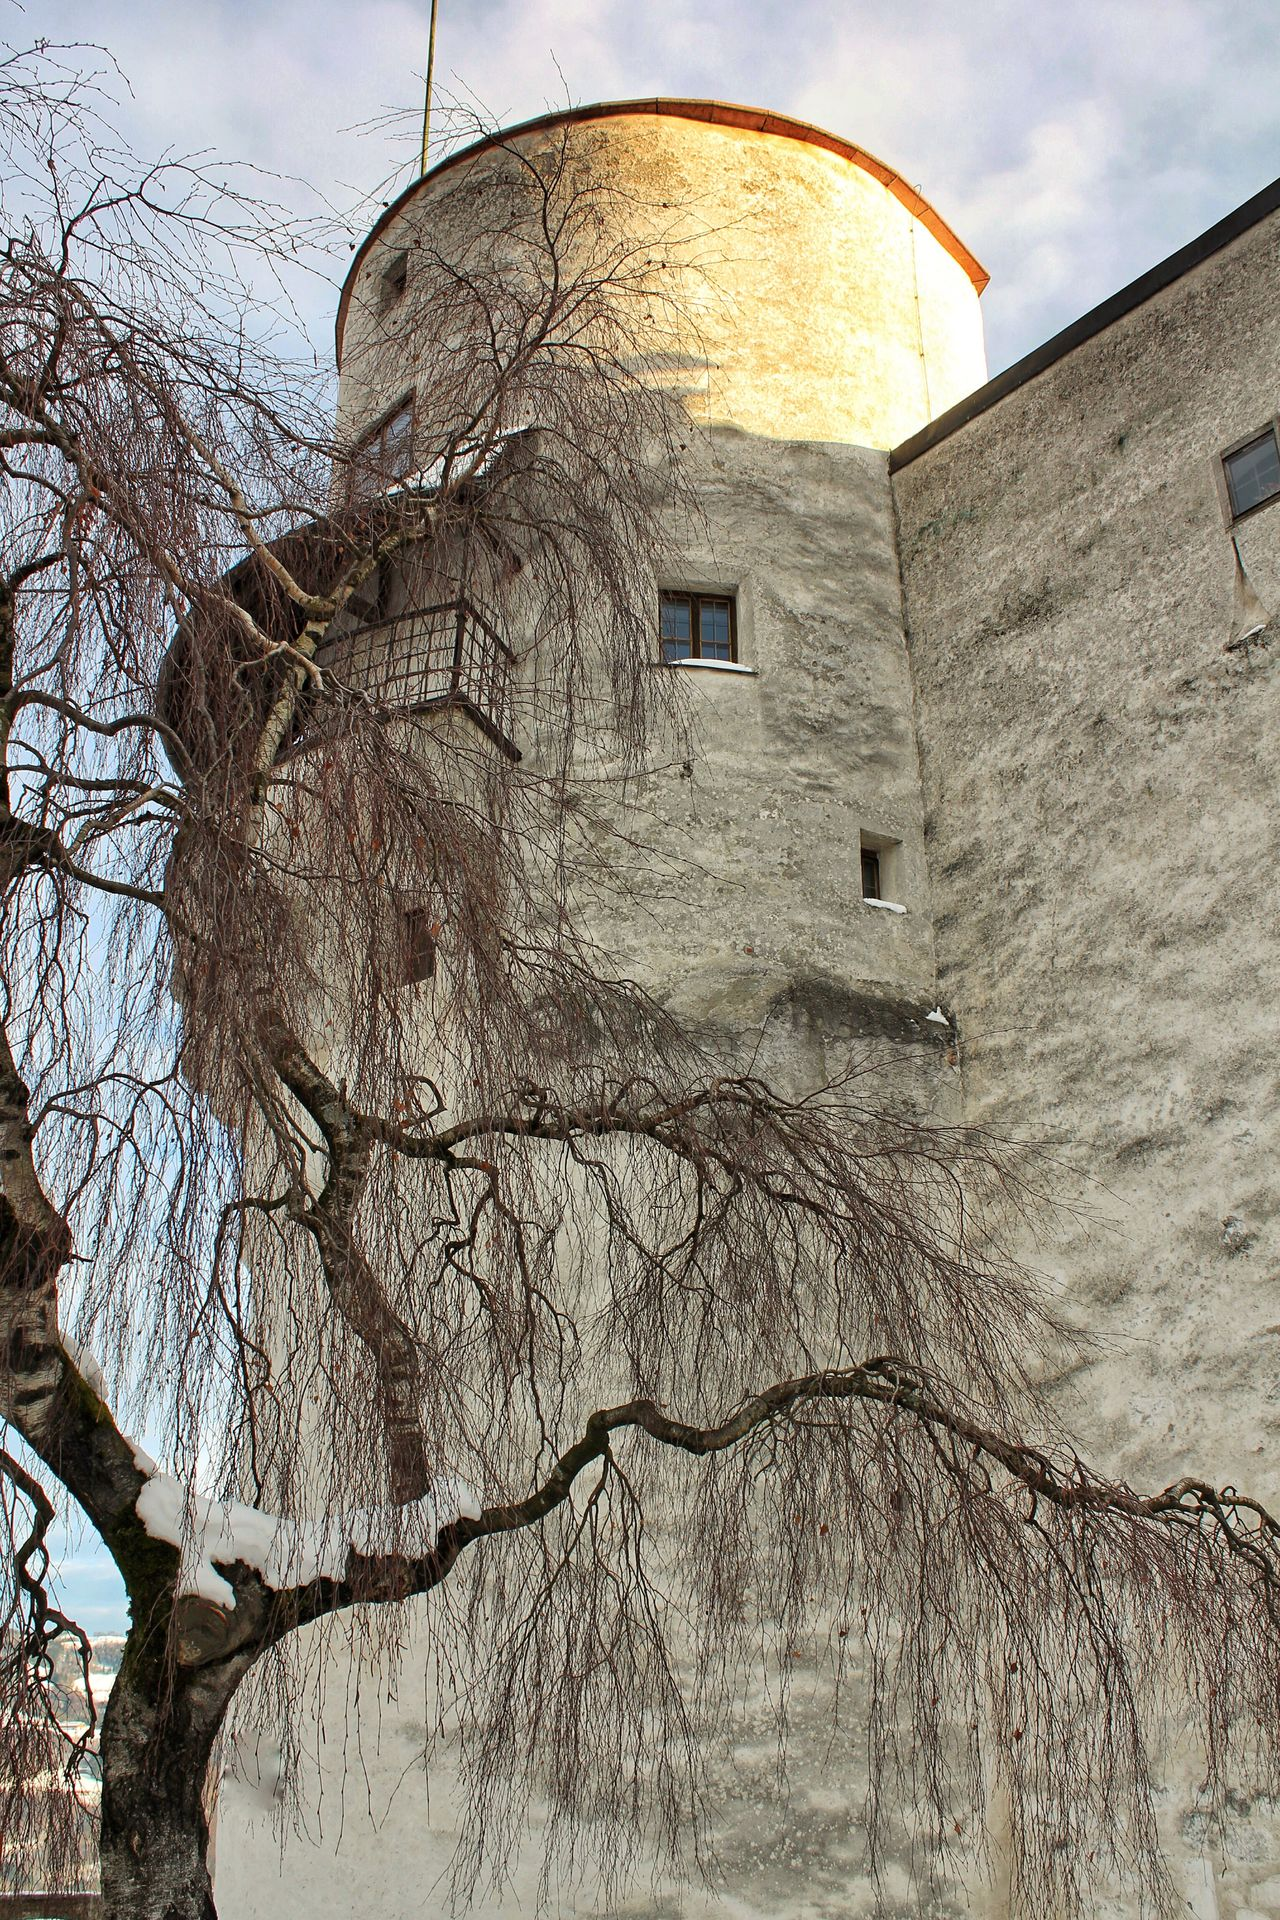 Hohensalzburg Castle Festung Hohensalzburg Salzburg, Austria Österreich Building Exterior Built Structure Castle Tower Winter Tree And Sky Travel Photography Travel Destinations Outdoor Photography Showcase June